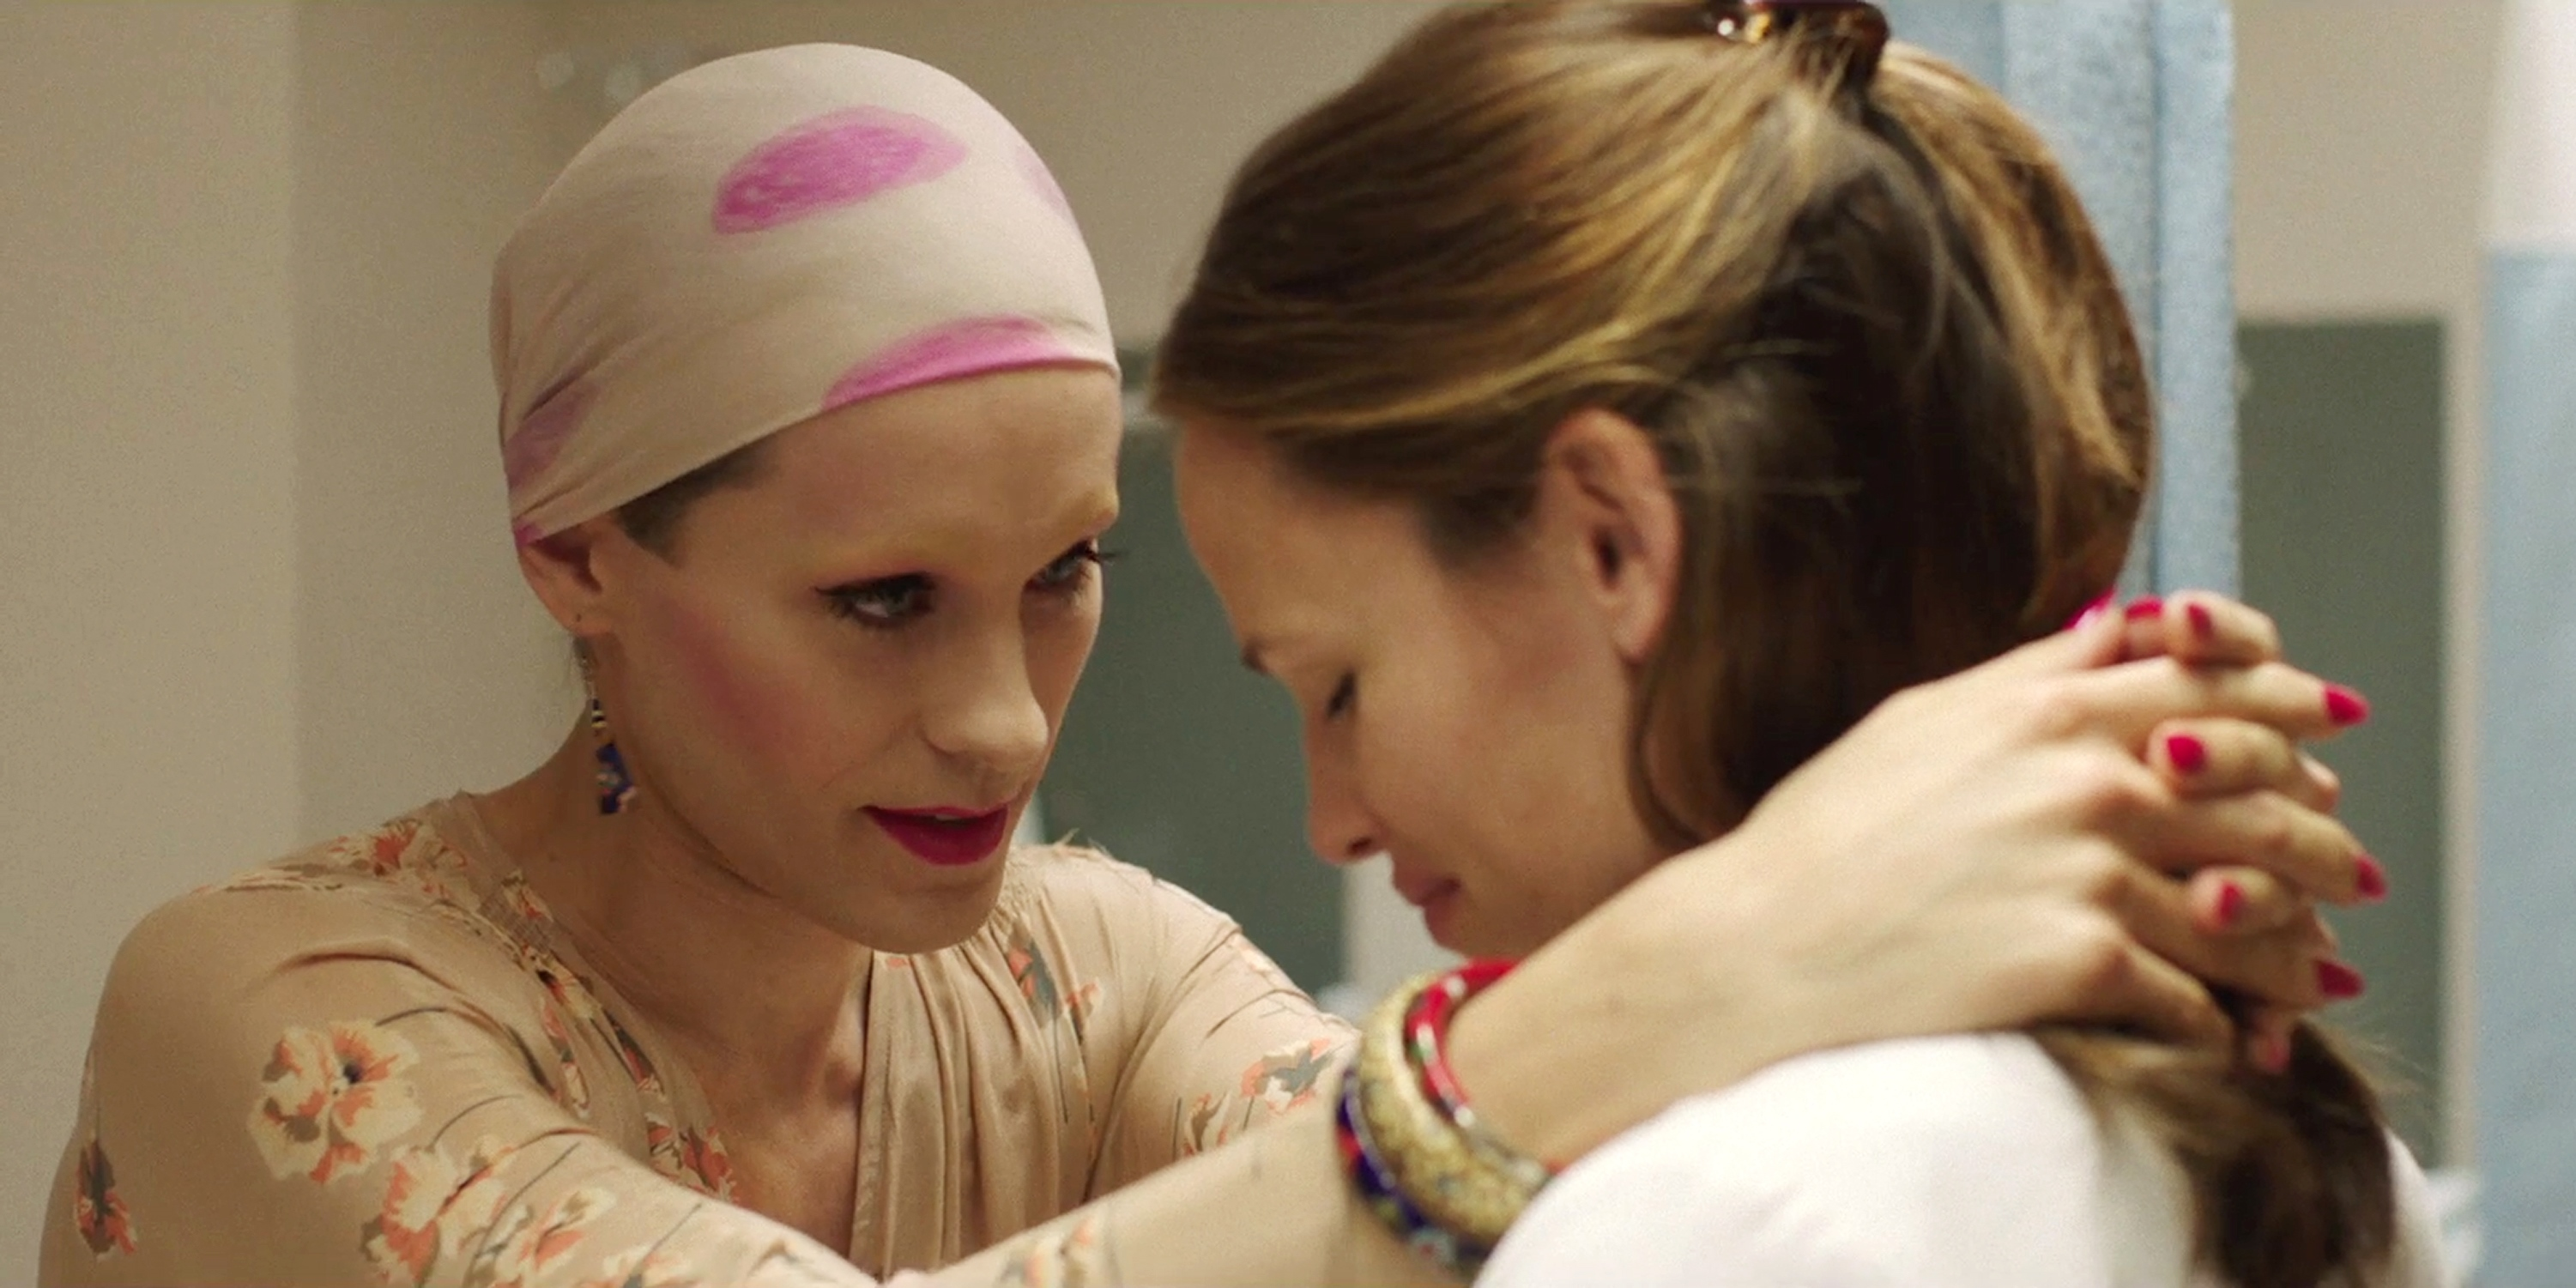 Hiv positive rayon jared leto looks to childhood friend eve